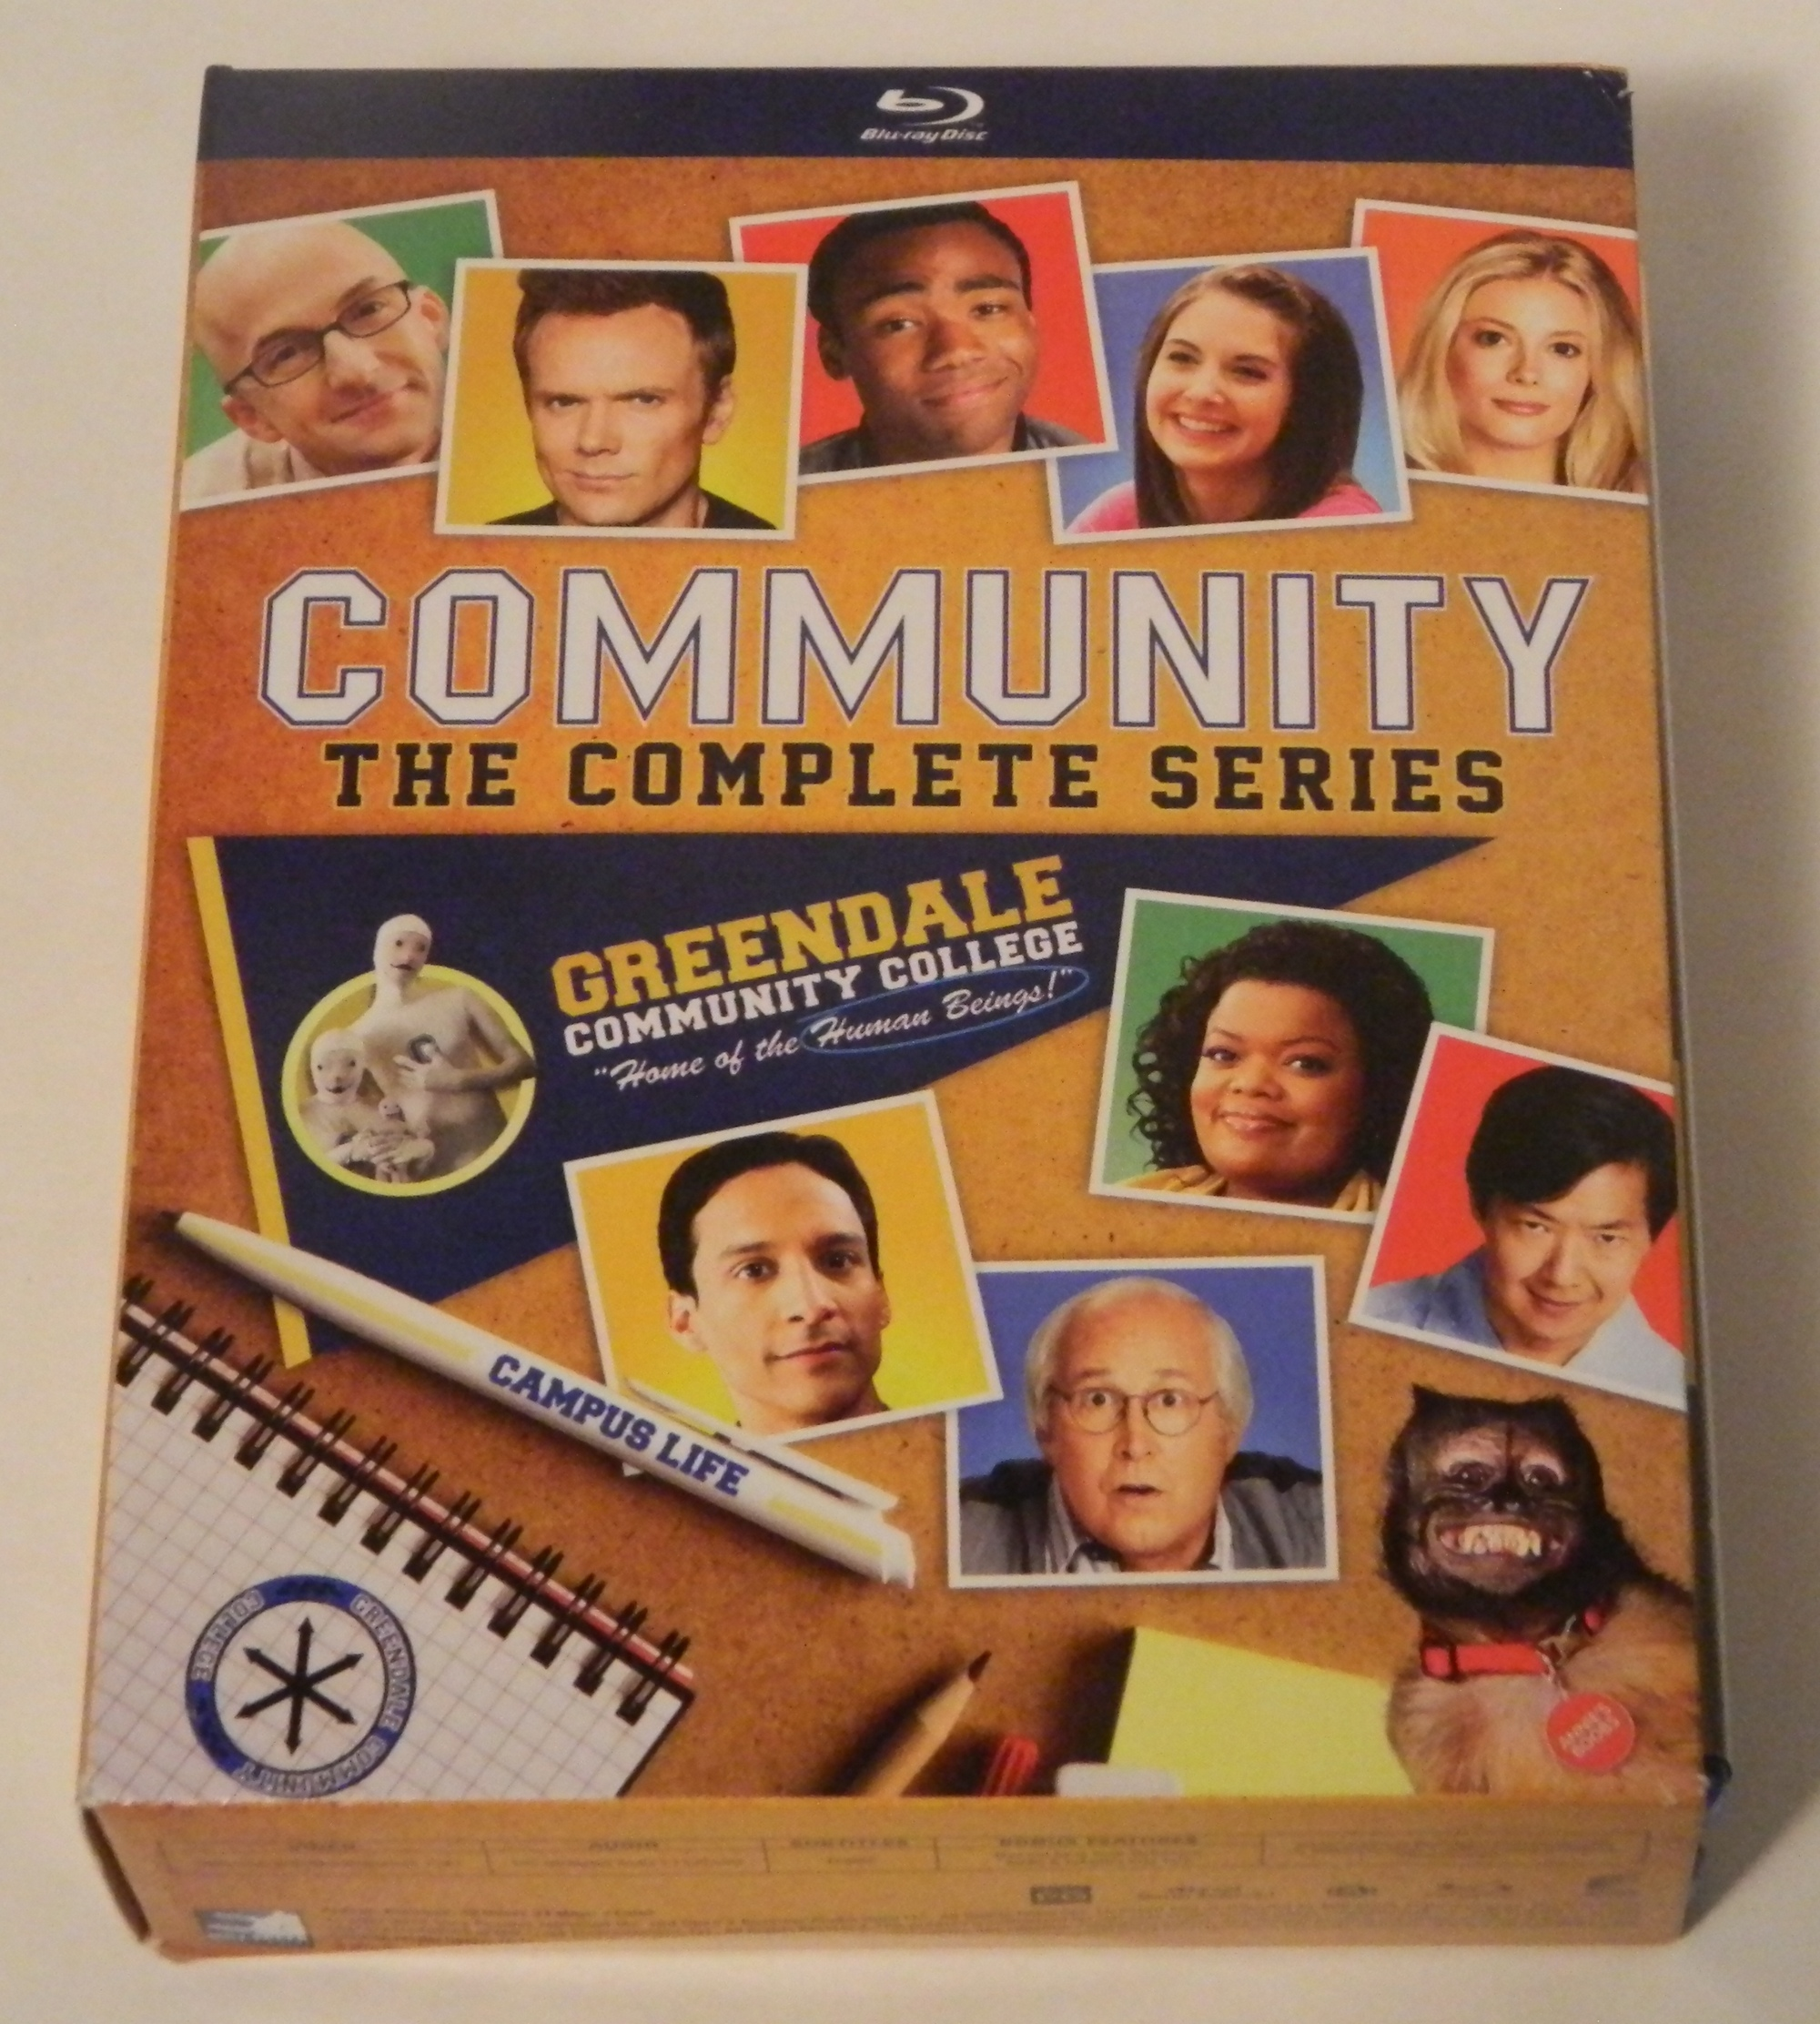 Community The Complete Series Blu-ray